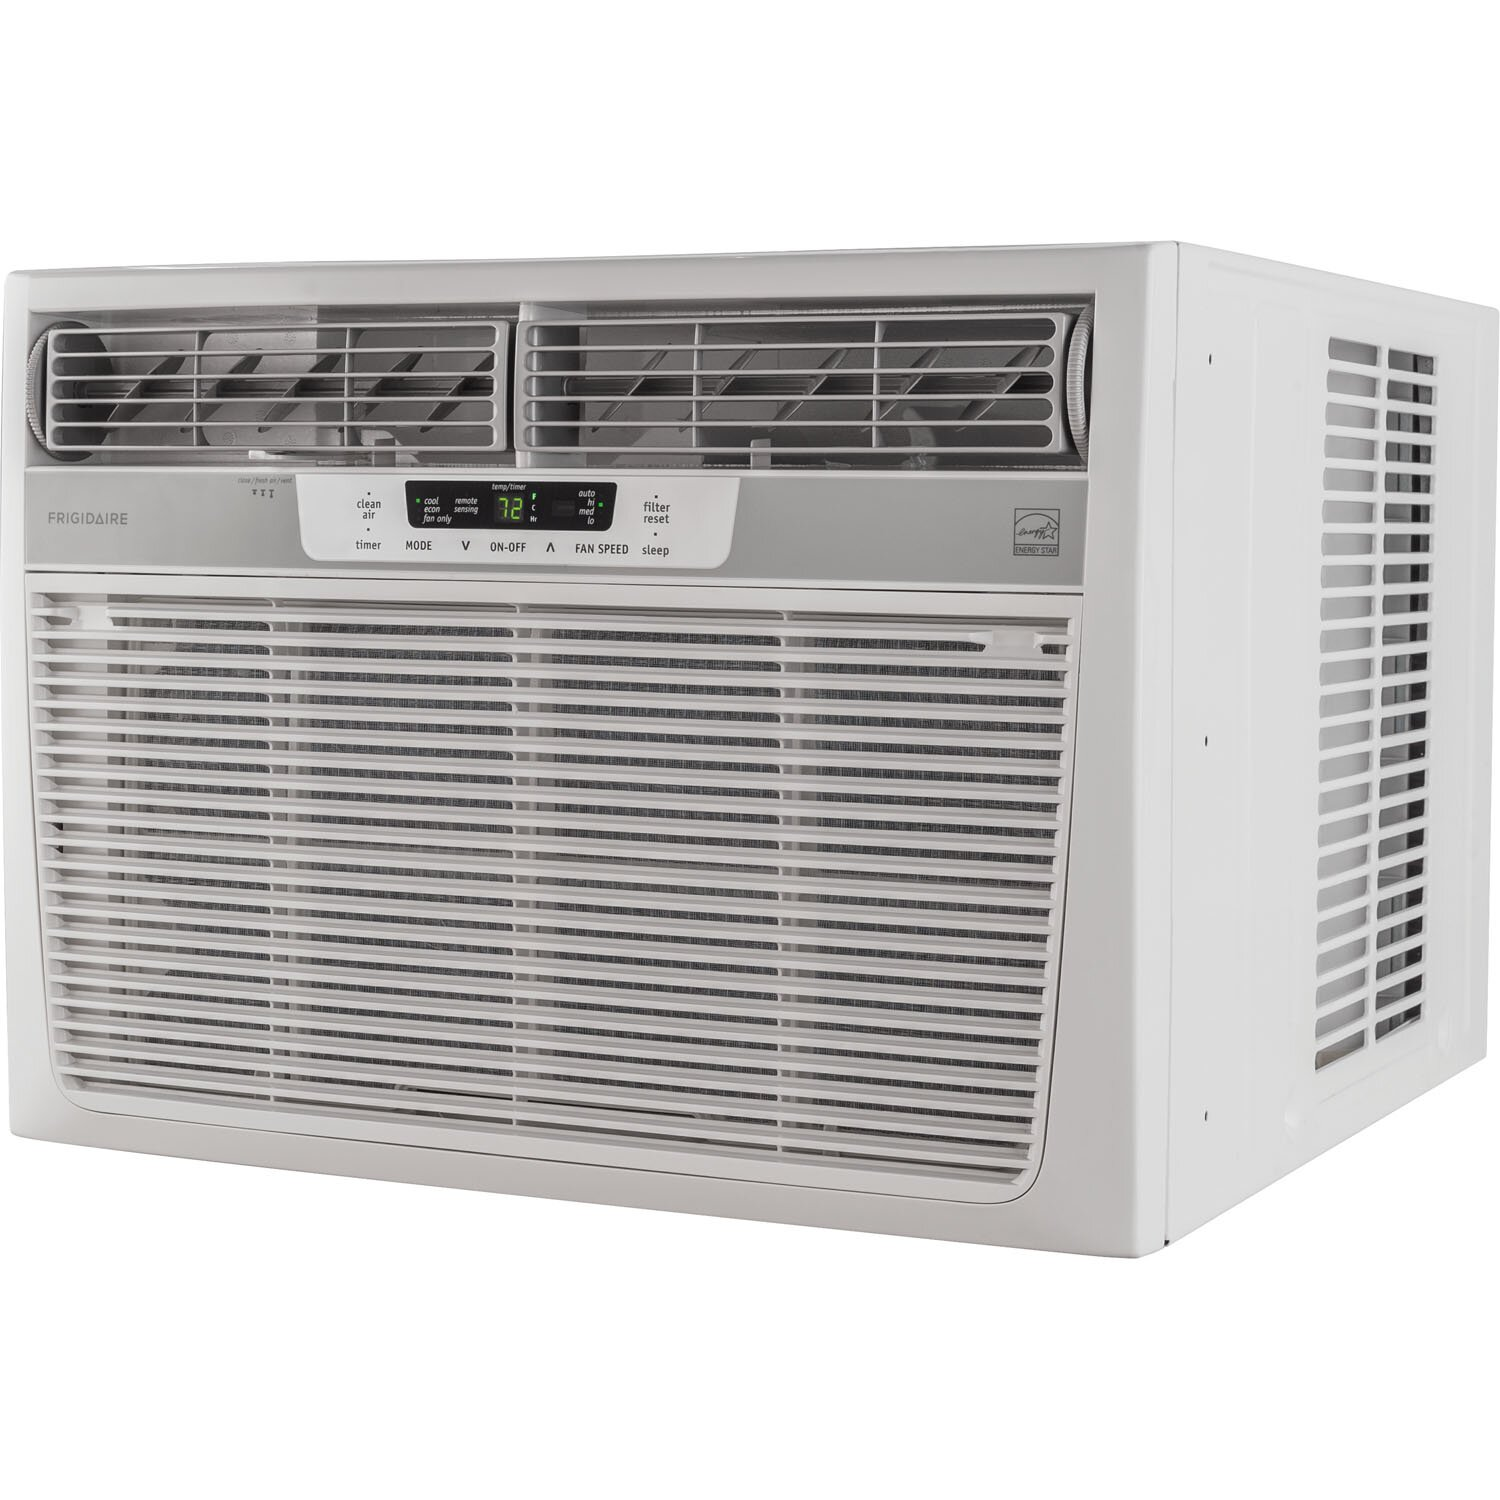 Star Window Median Air Conditioner with Remote & Reviews Wayfair #4E6439